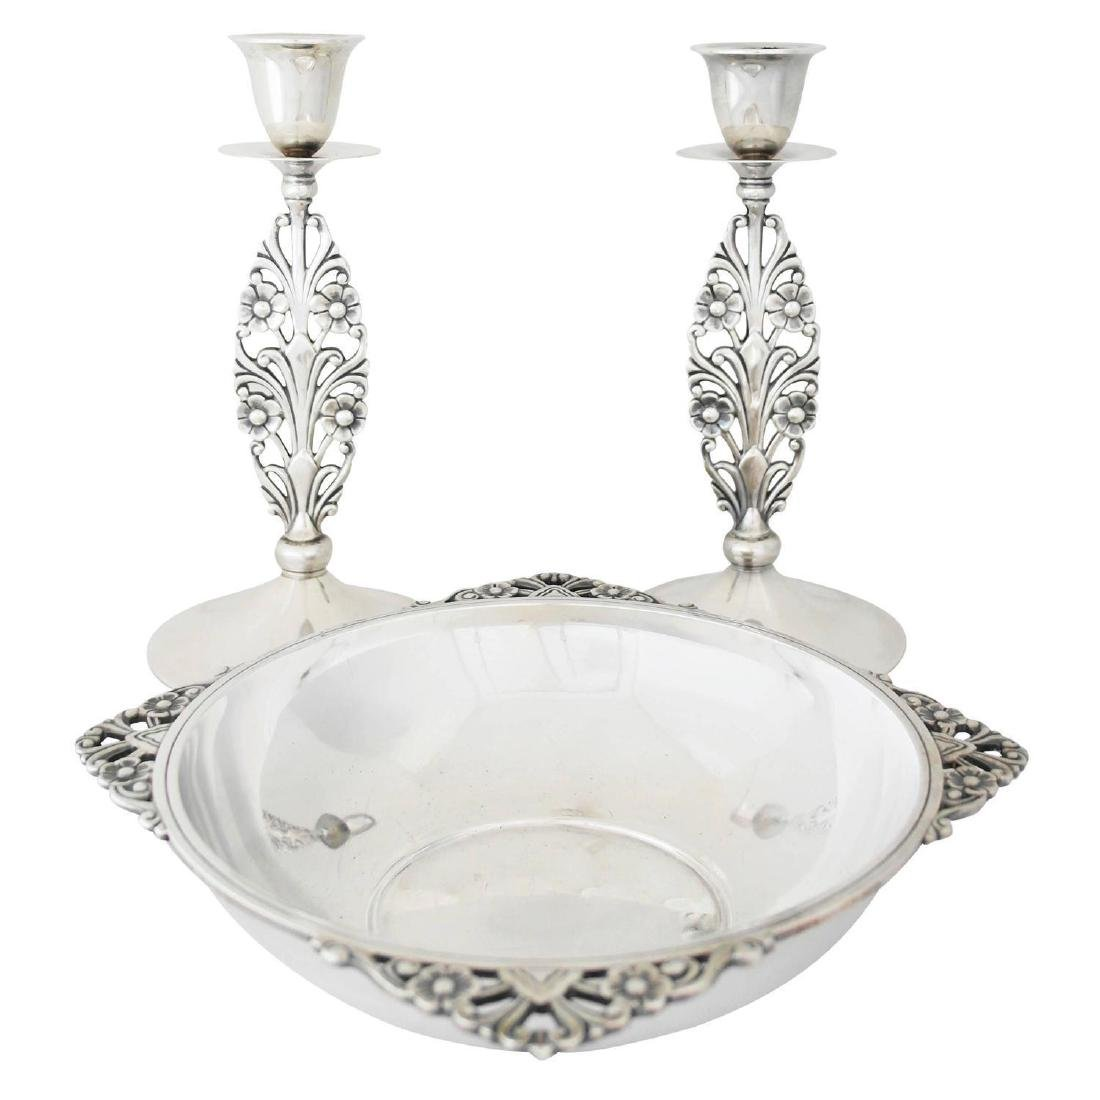 Tiffany Sterling Art Deco Candlesticks/Cennterpiece Set